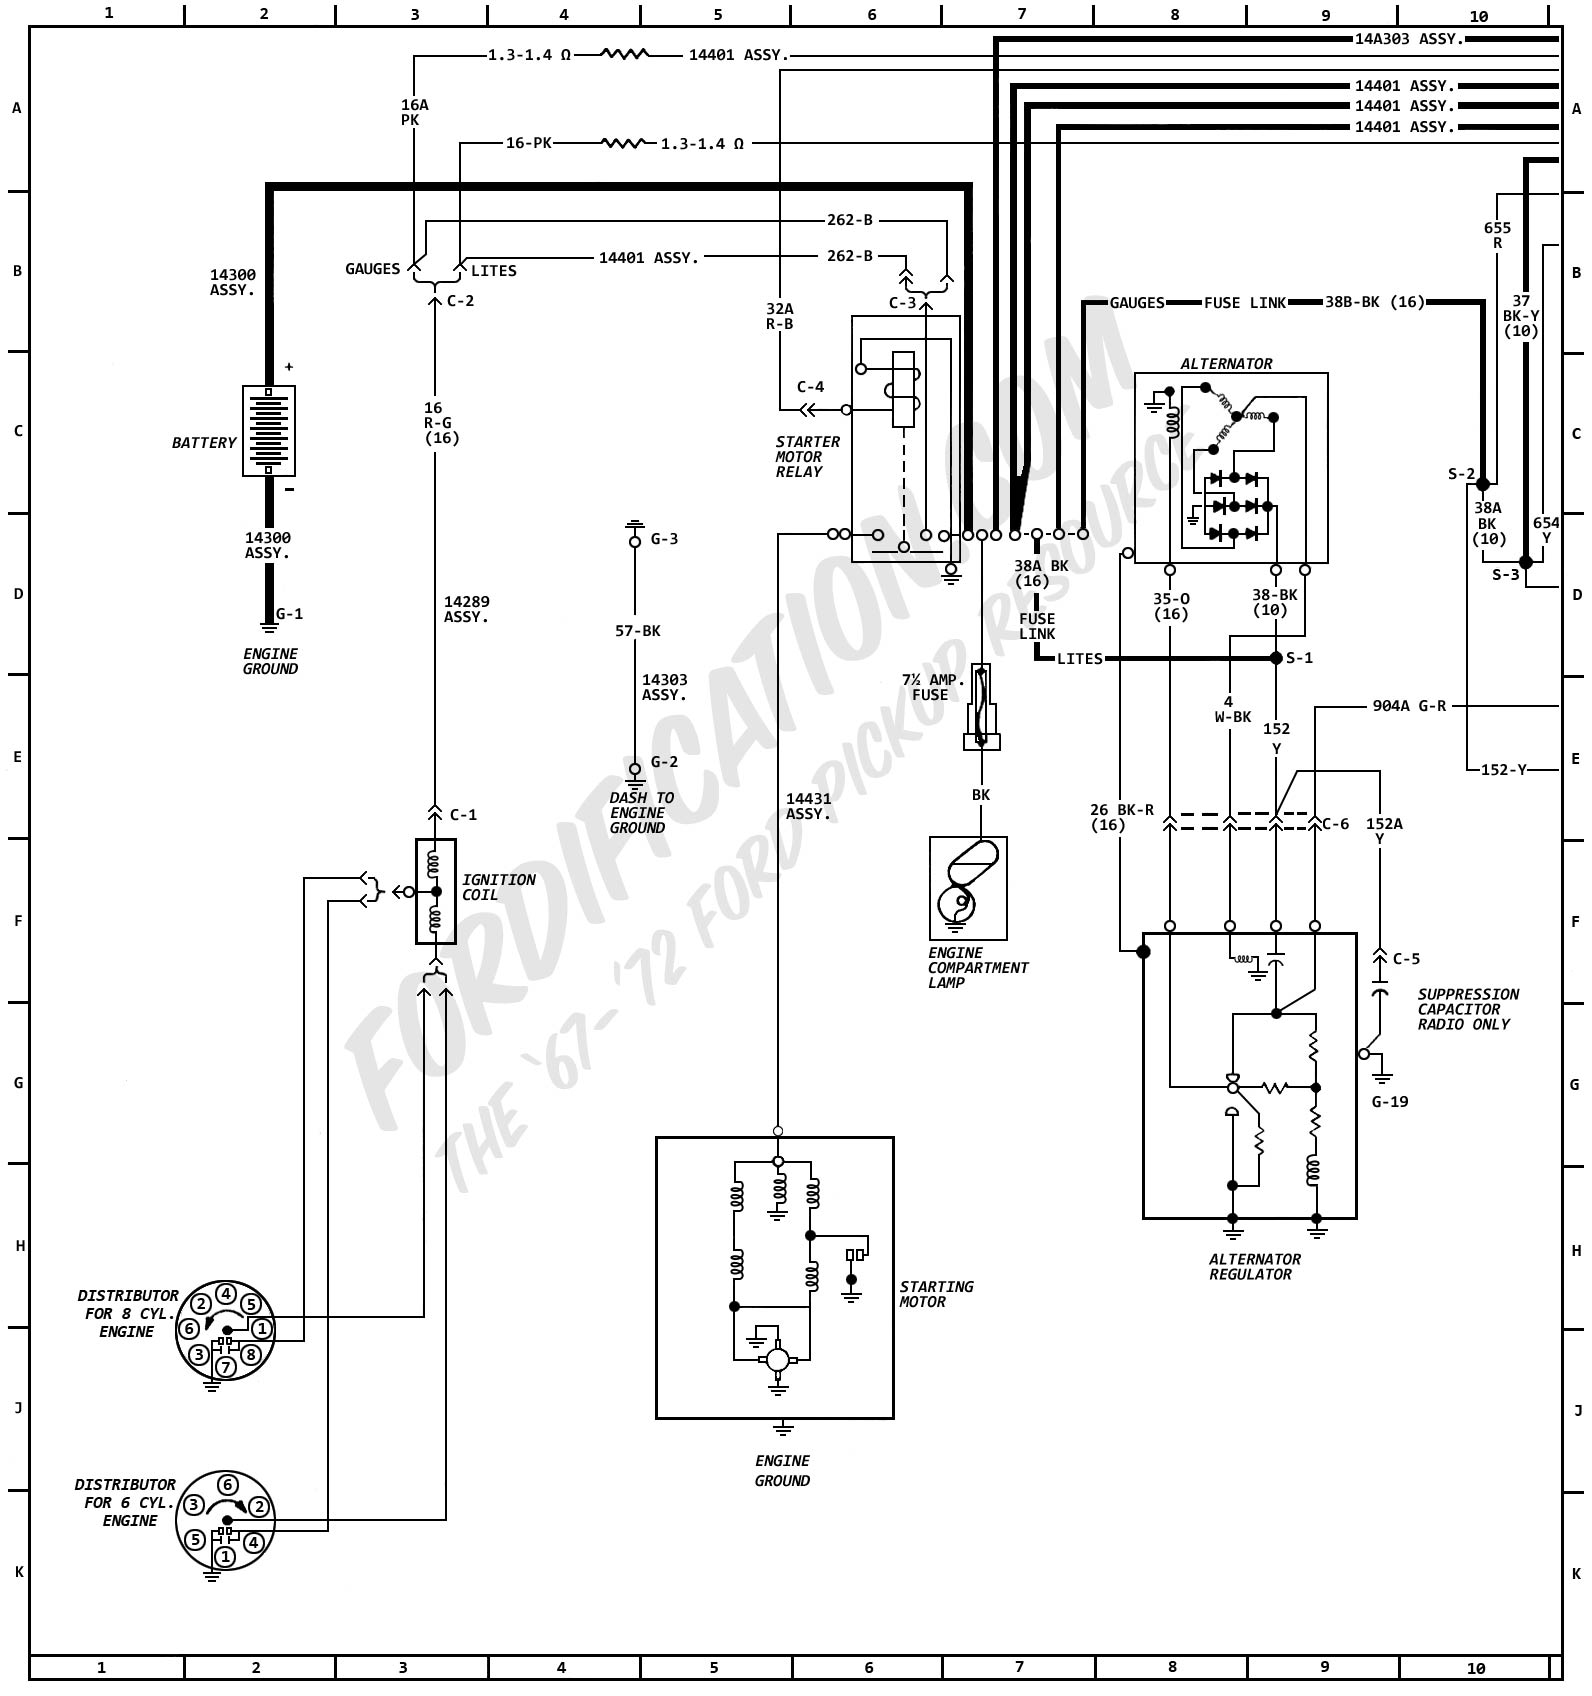 1972MasterWiring_01 1972 ford truck wiring diagrams fordification com on 1972 ford f100 wiring diagram